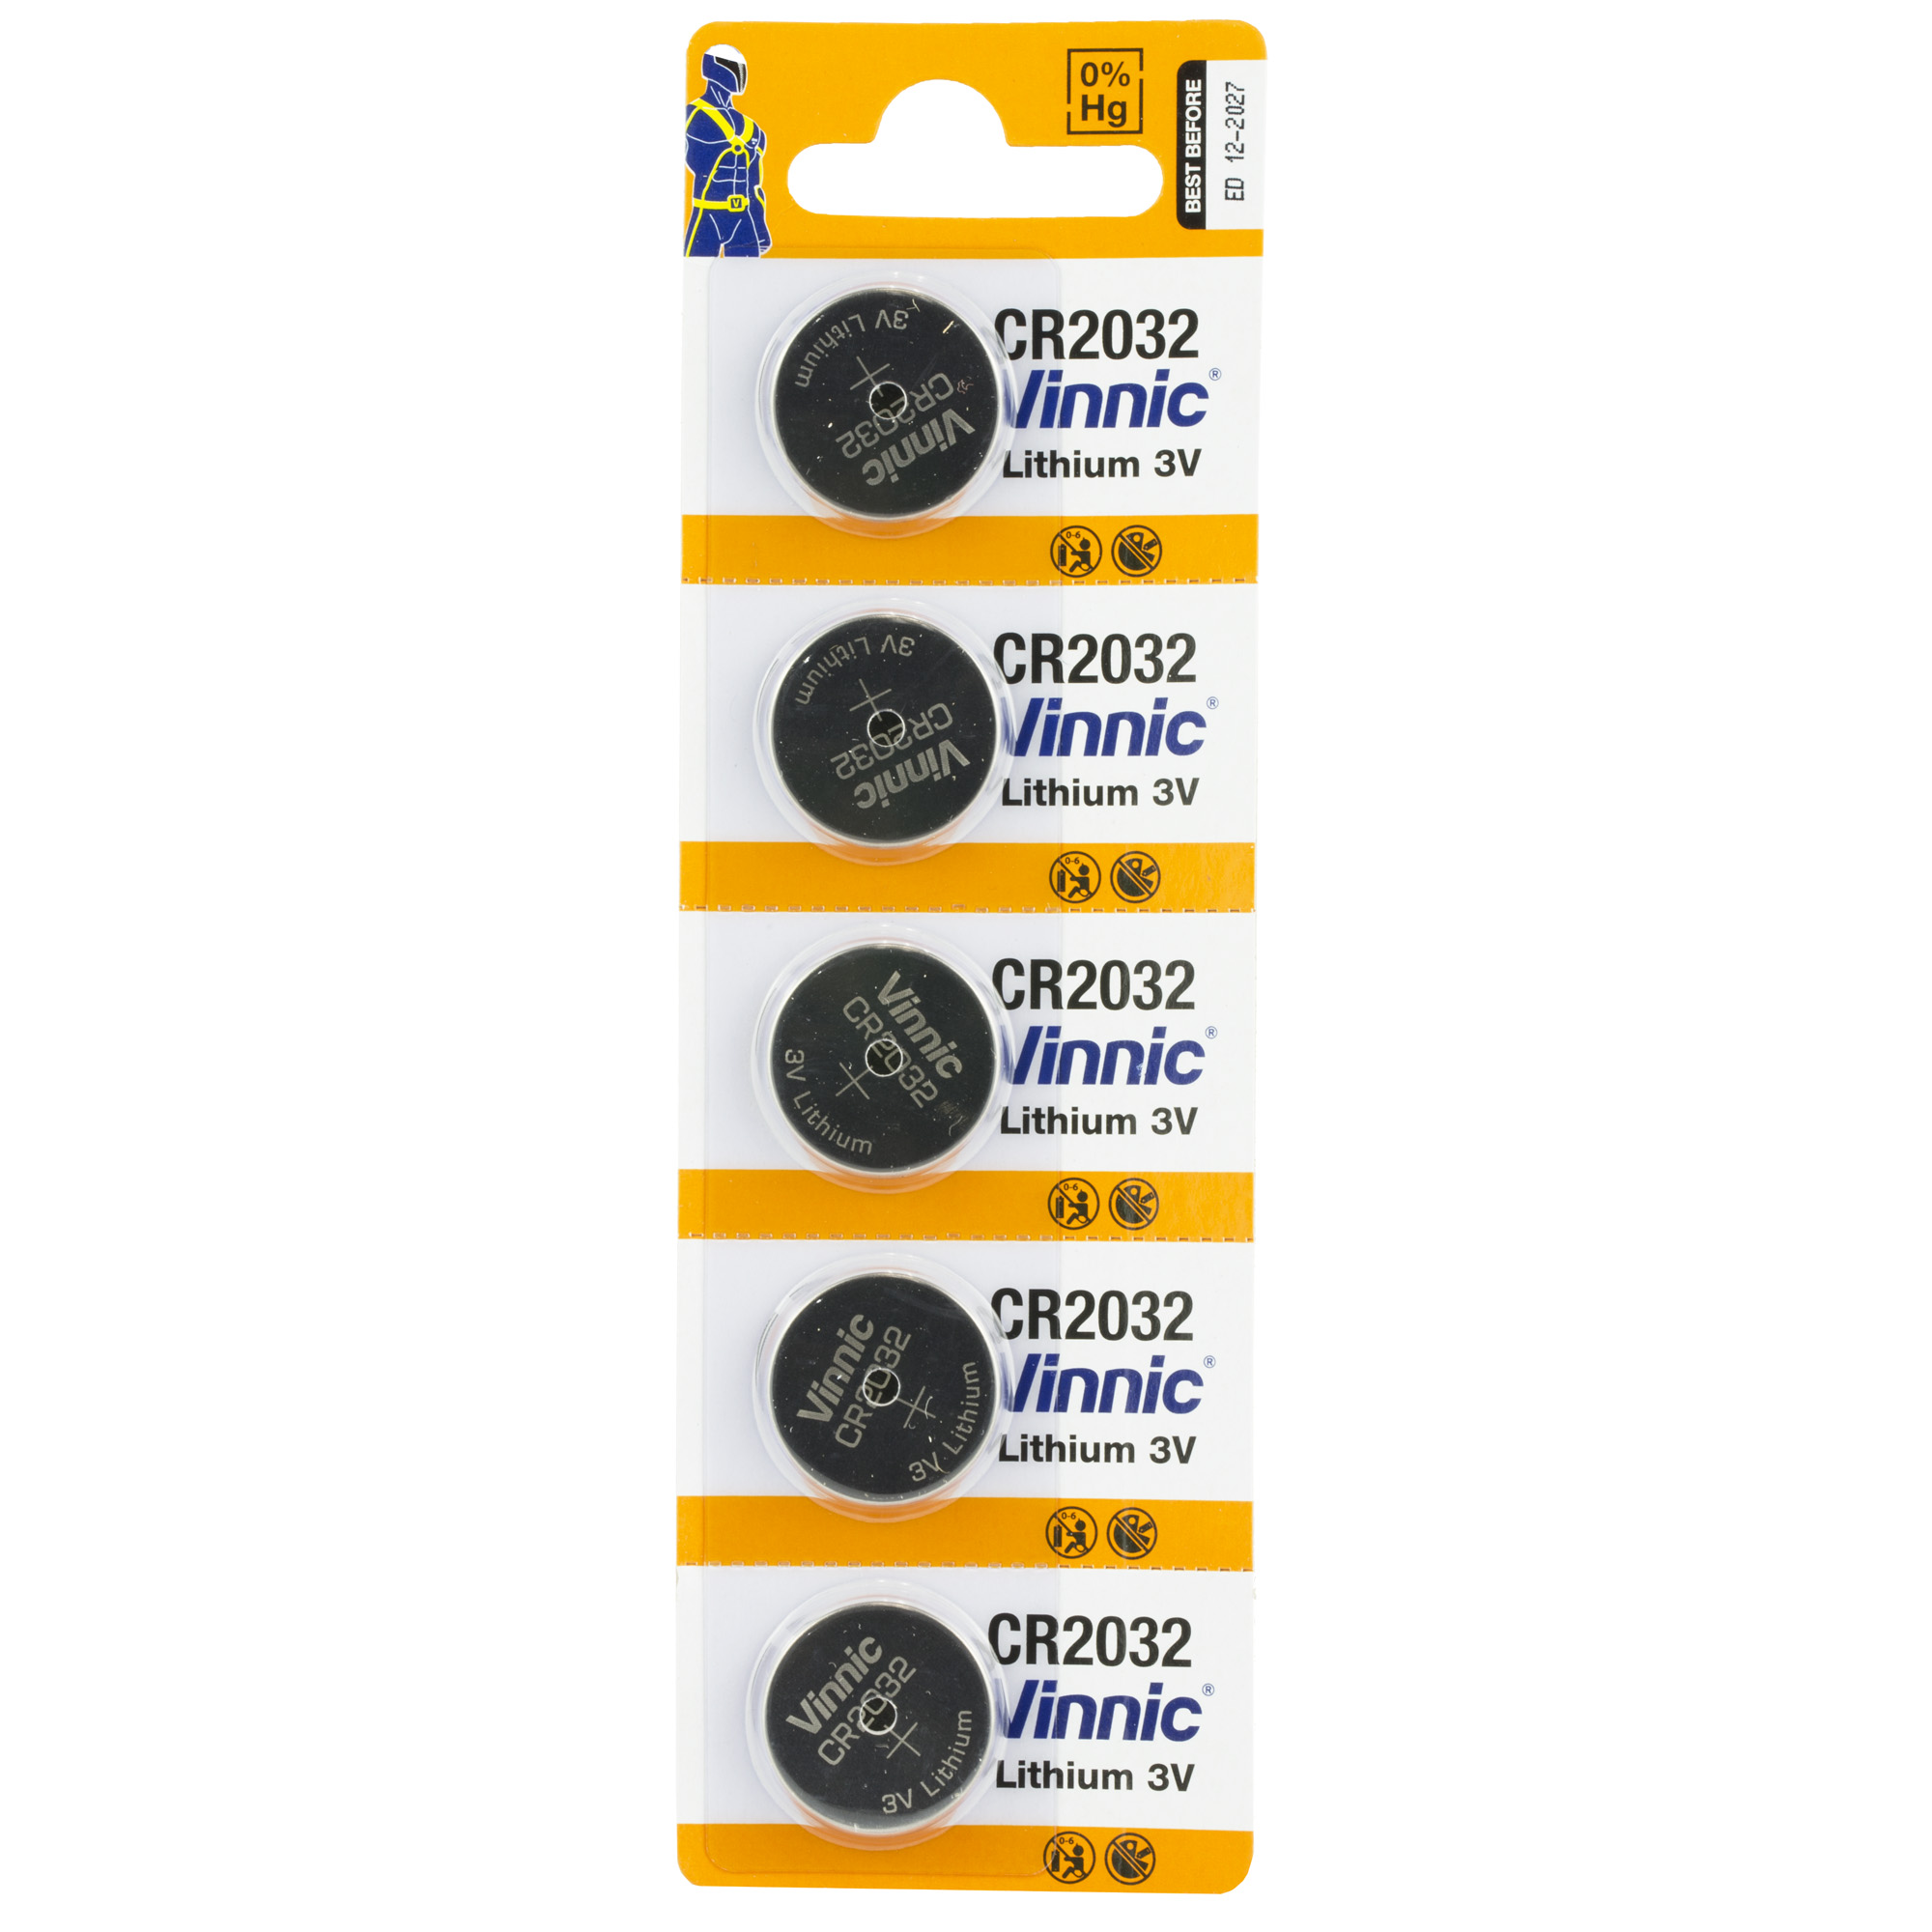 CR2032 batteries for use in many Crimson Trace products.